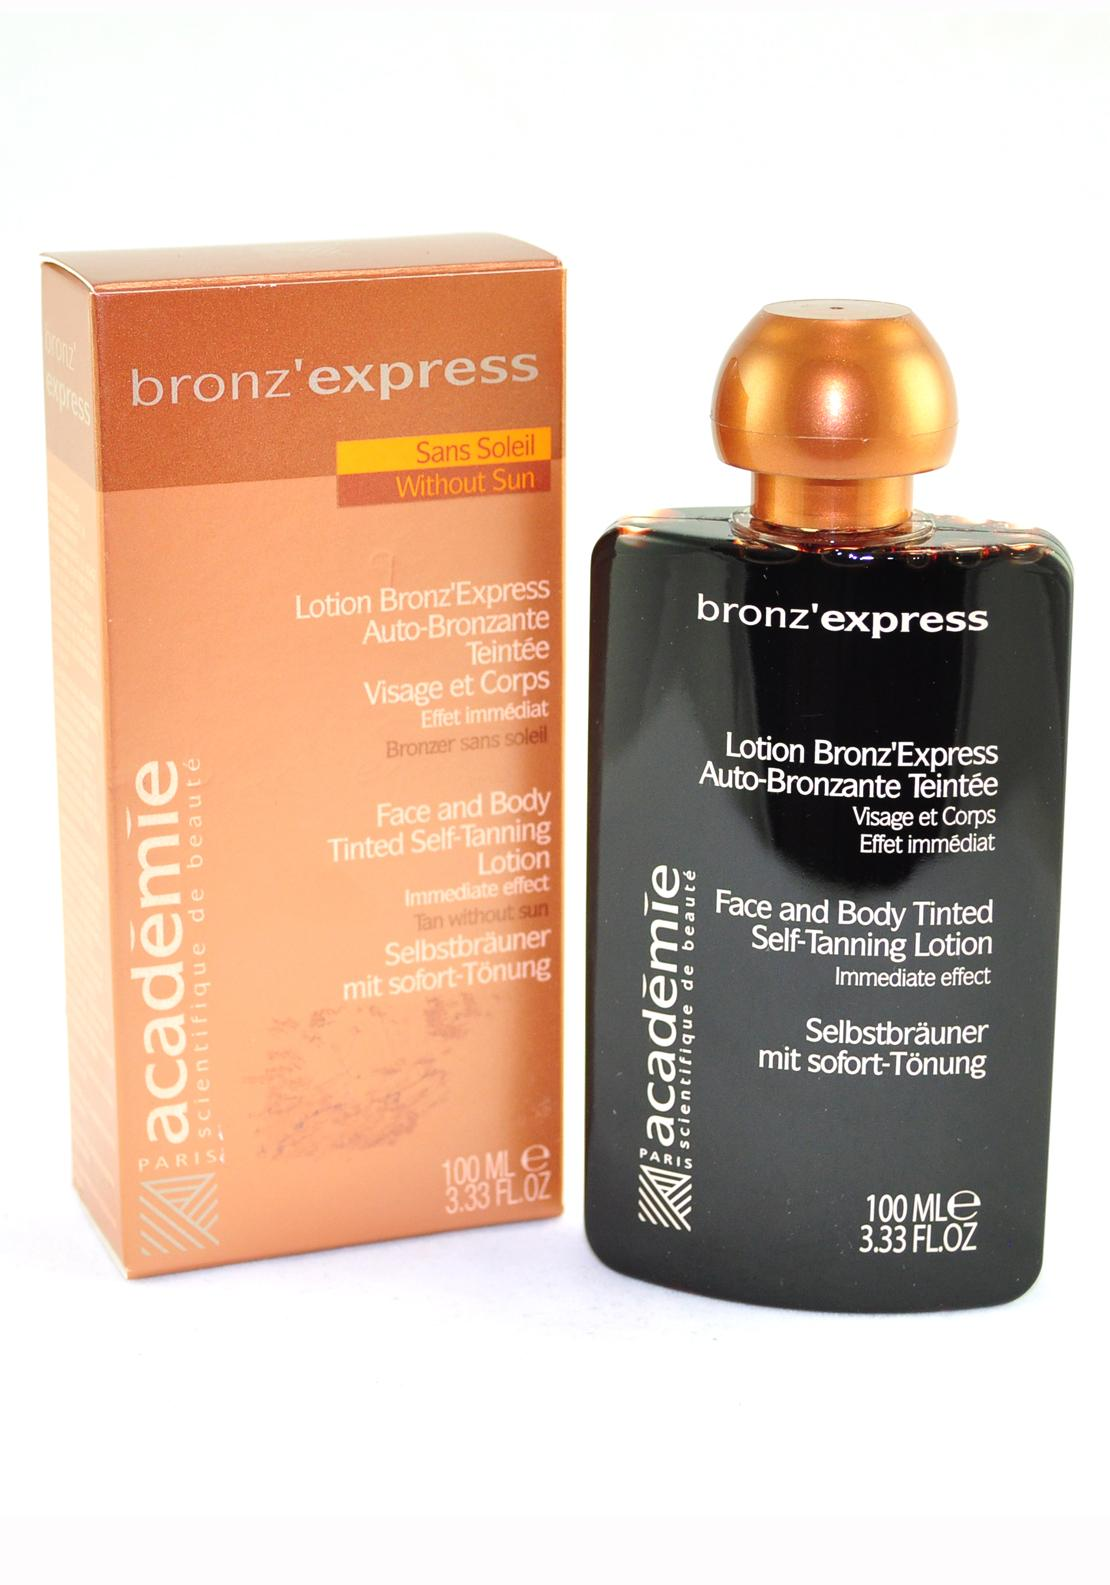 Bronz' Express Face and Body Tinted Self-Tanning Lotion, 100ml